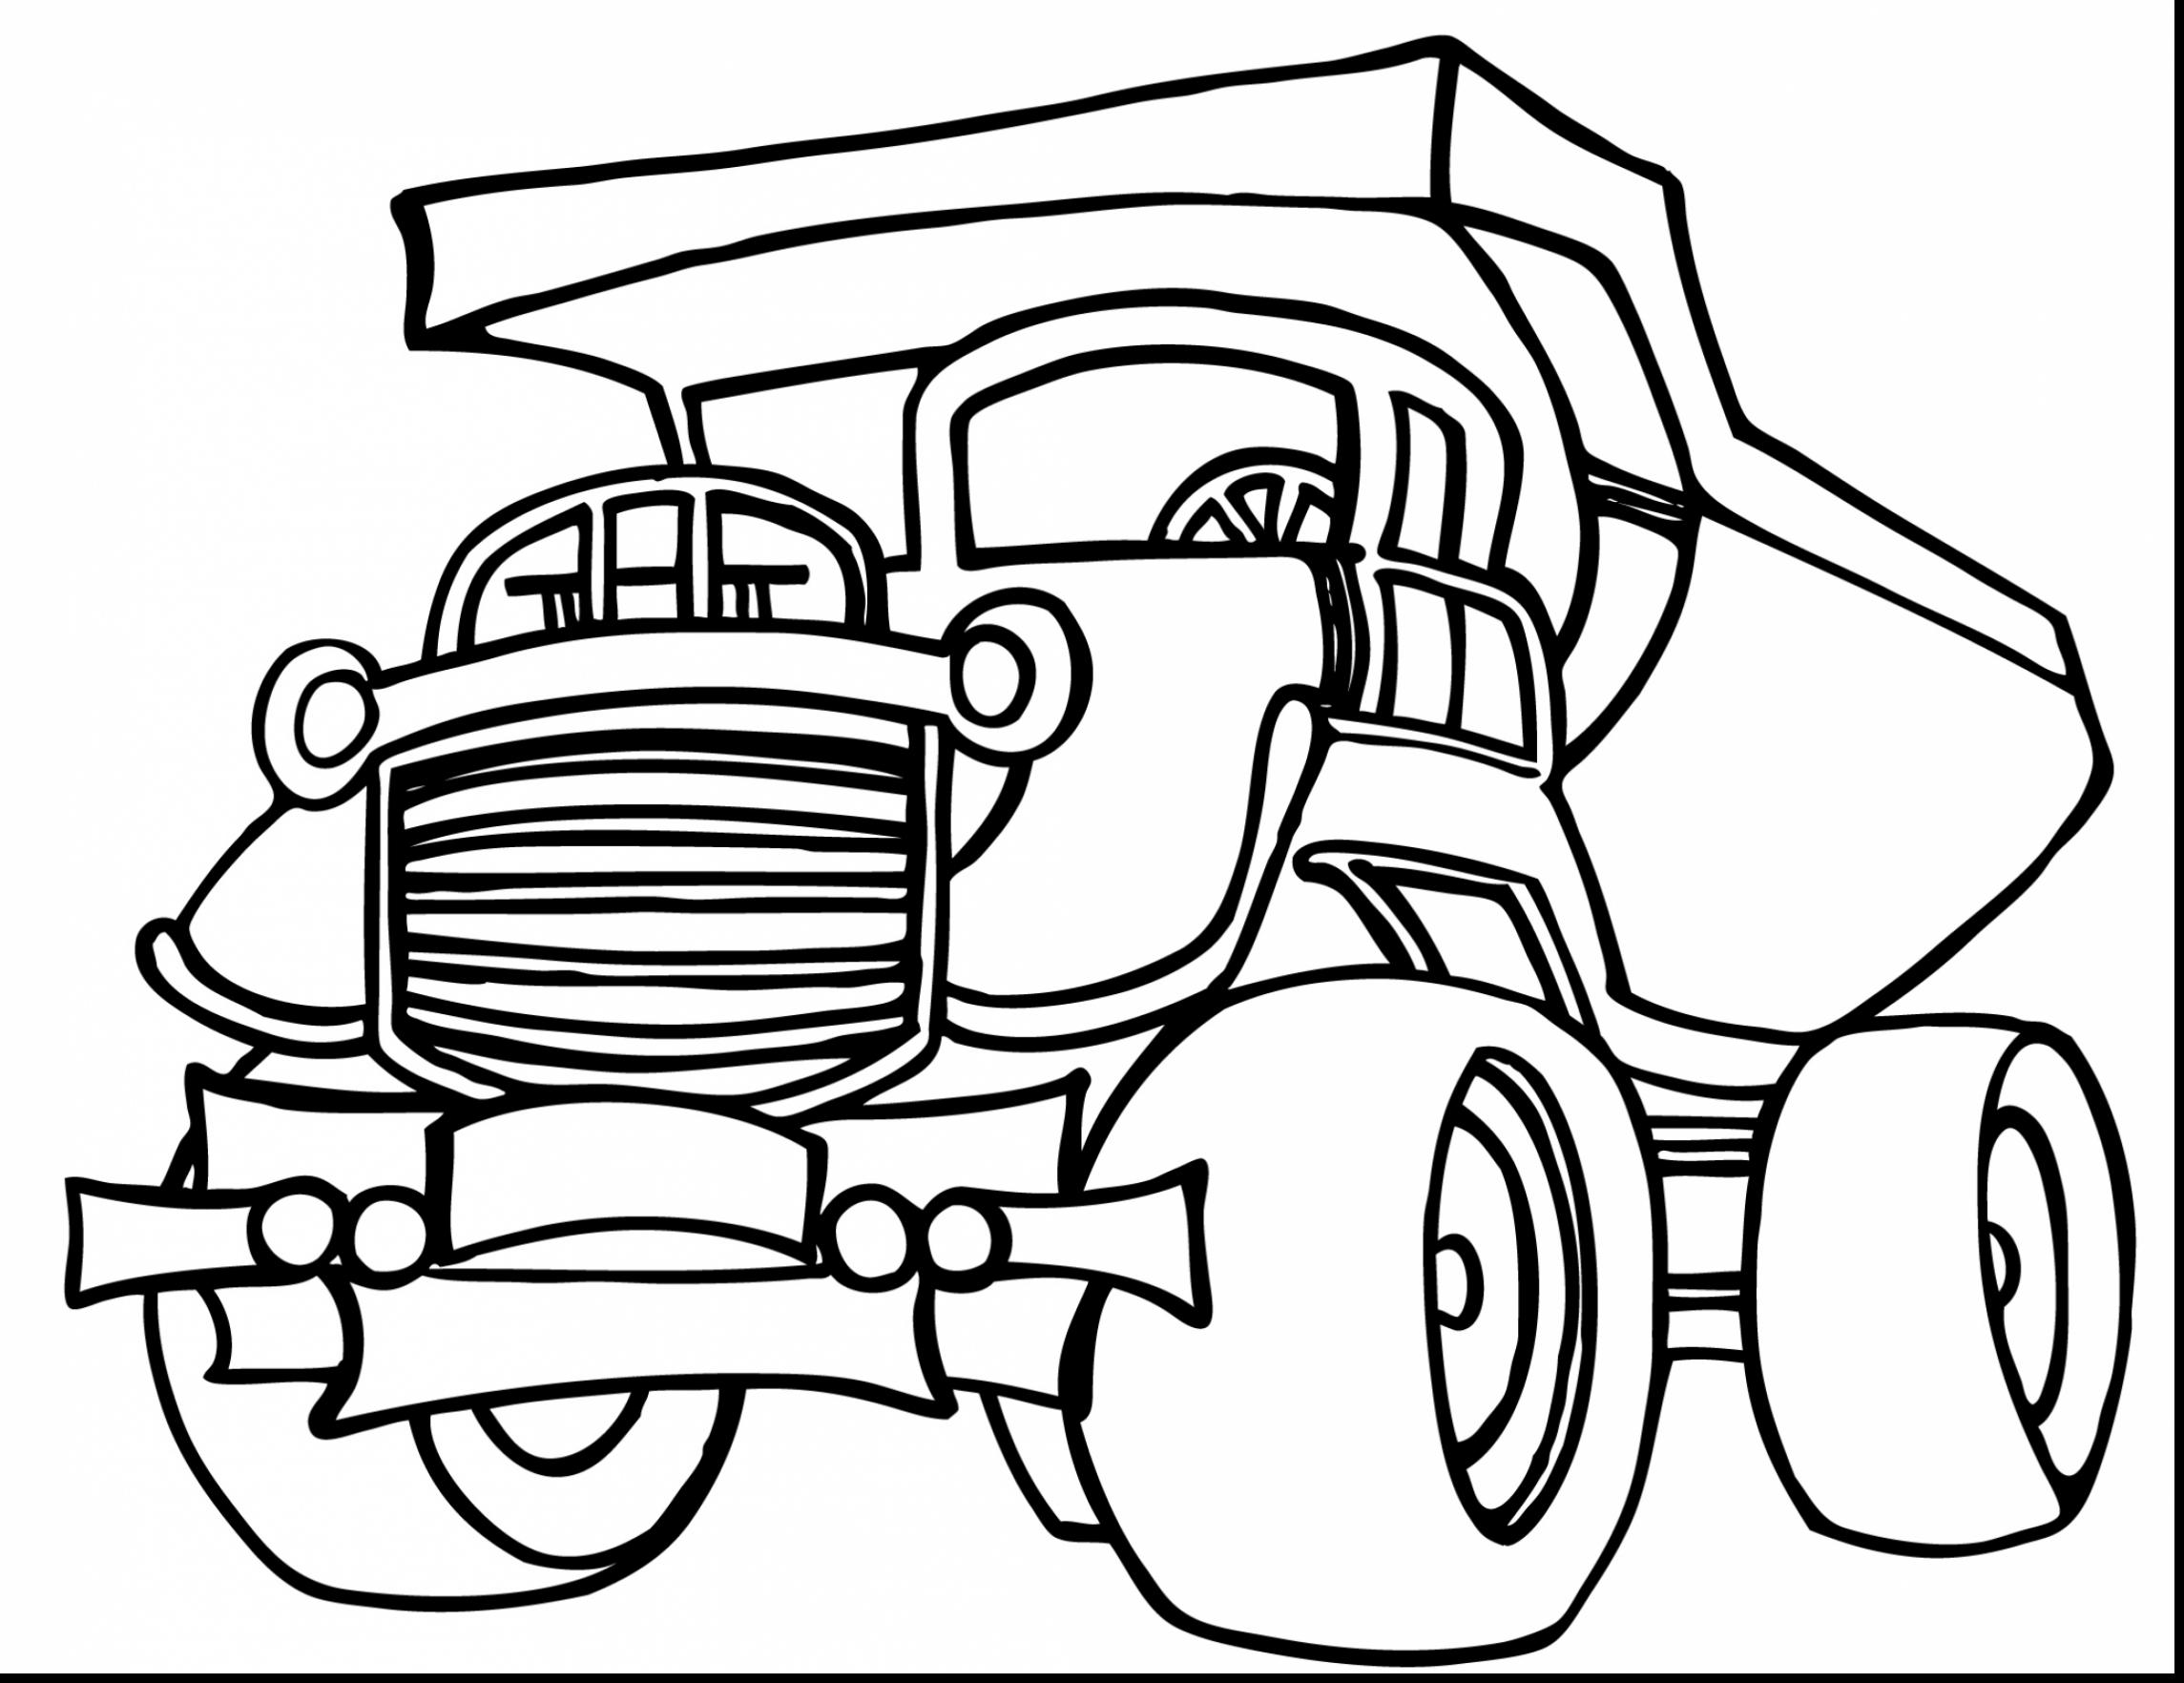 2289x1764 Excellent Fire Truck Coloring Pages With Trucks Coloring Pages